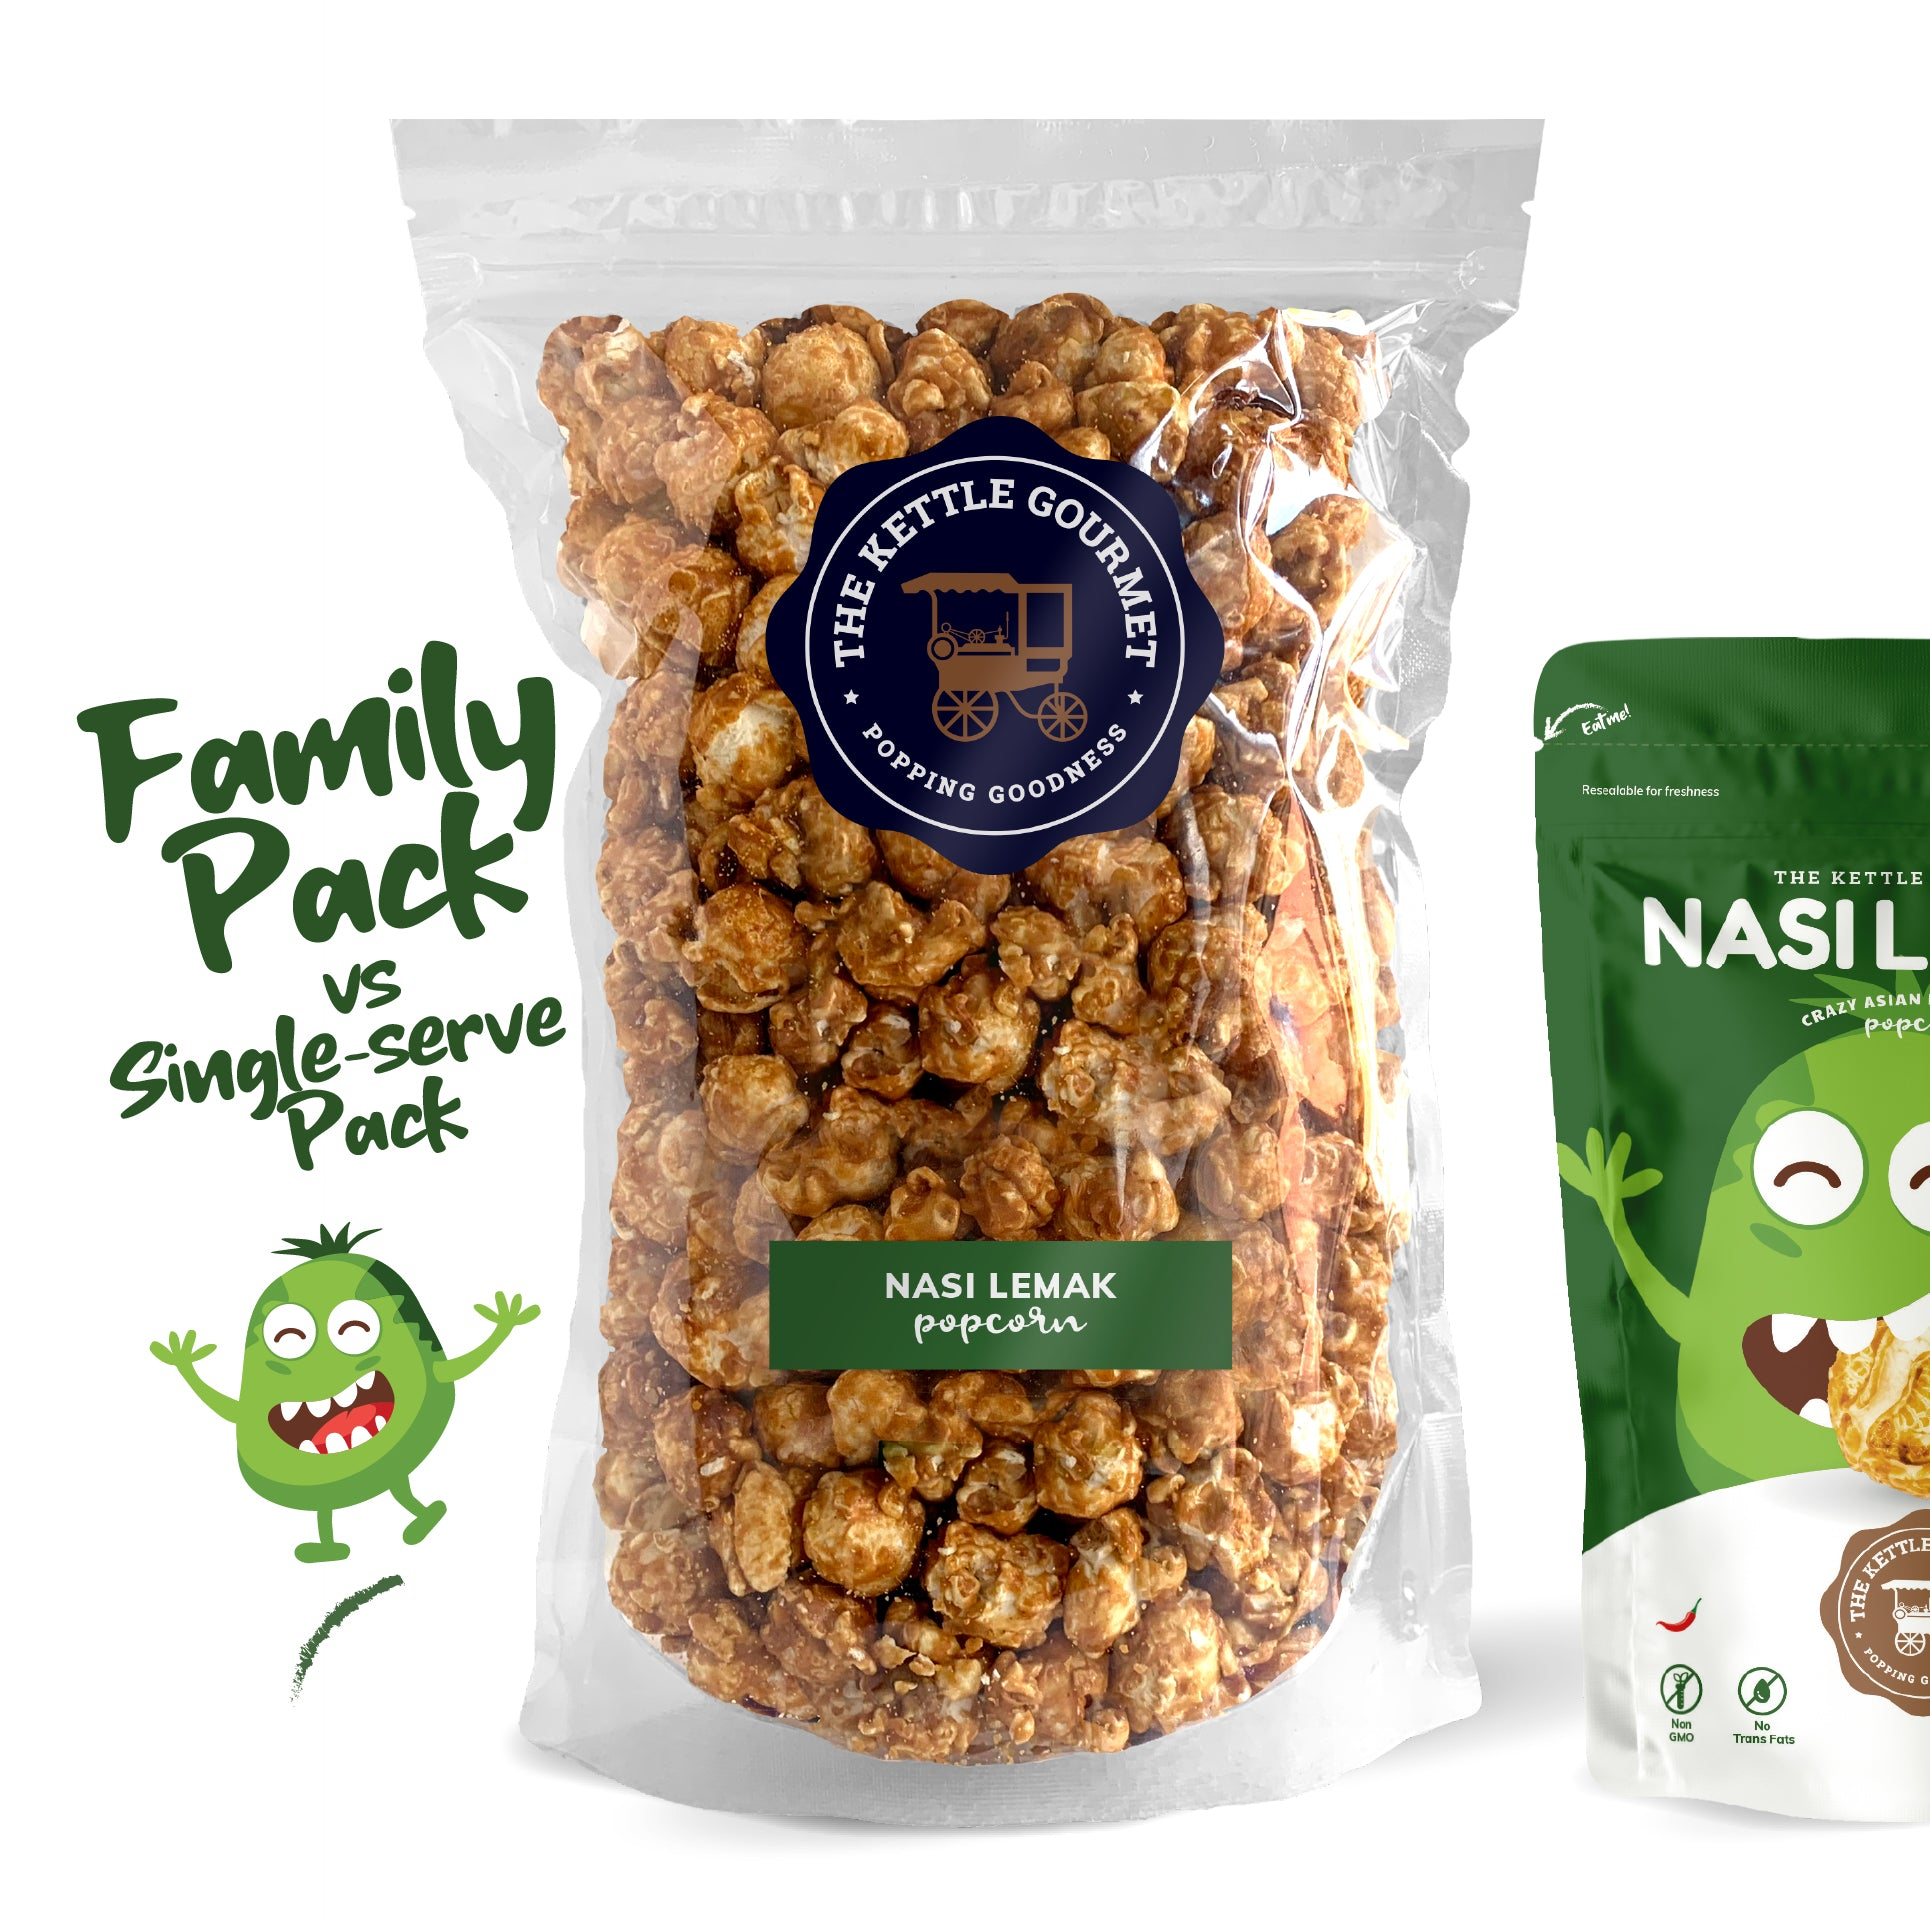 TKG Nasi Lemak Flavoured Popcorn (Family Pack vs Single-serve)